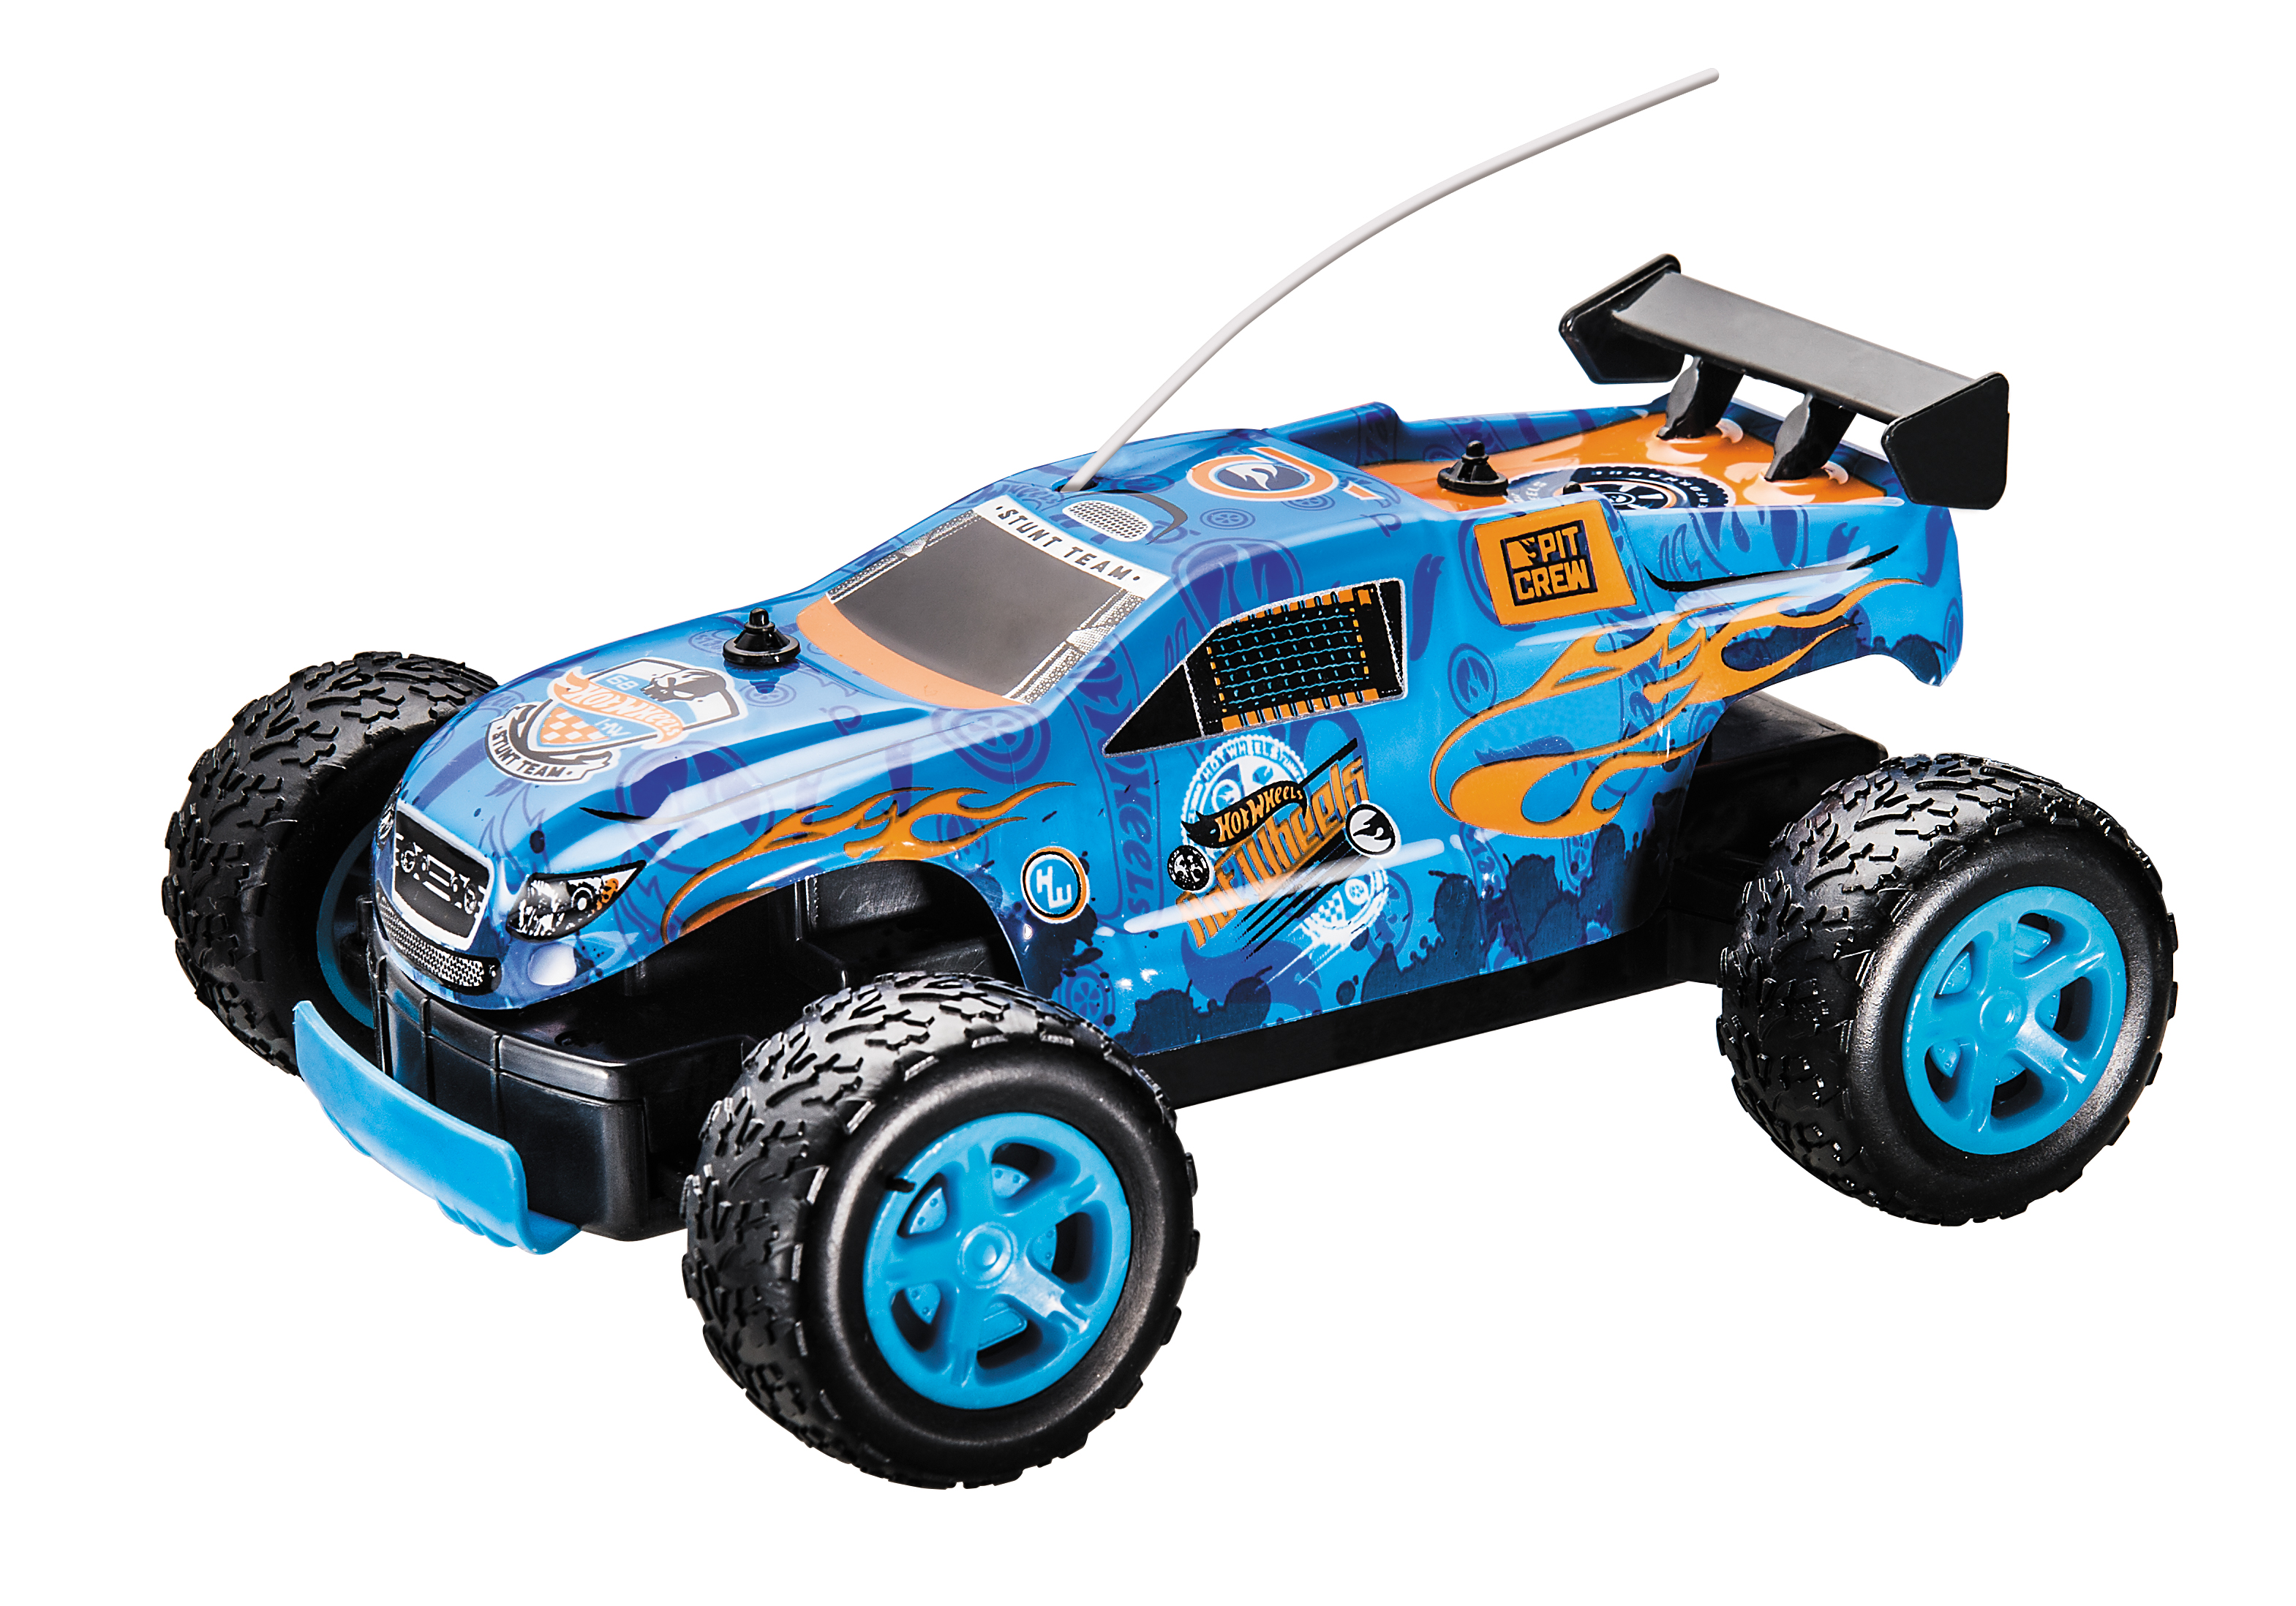 HOT WHEELS MICRO BUGGY 63339 - N16419